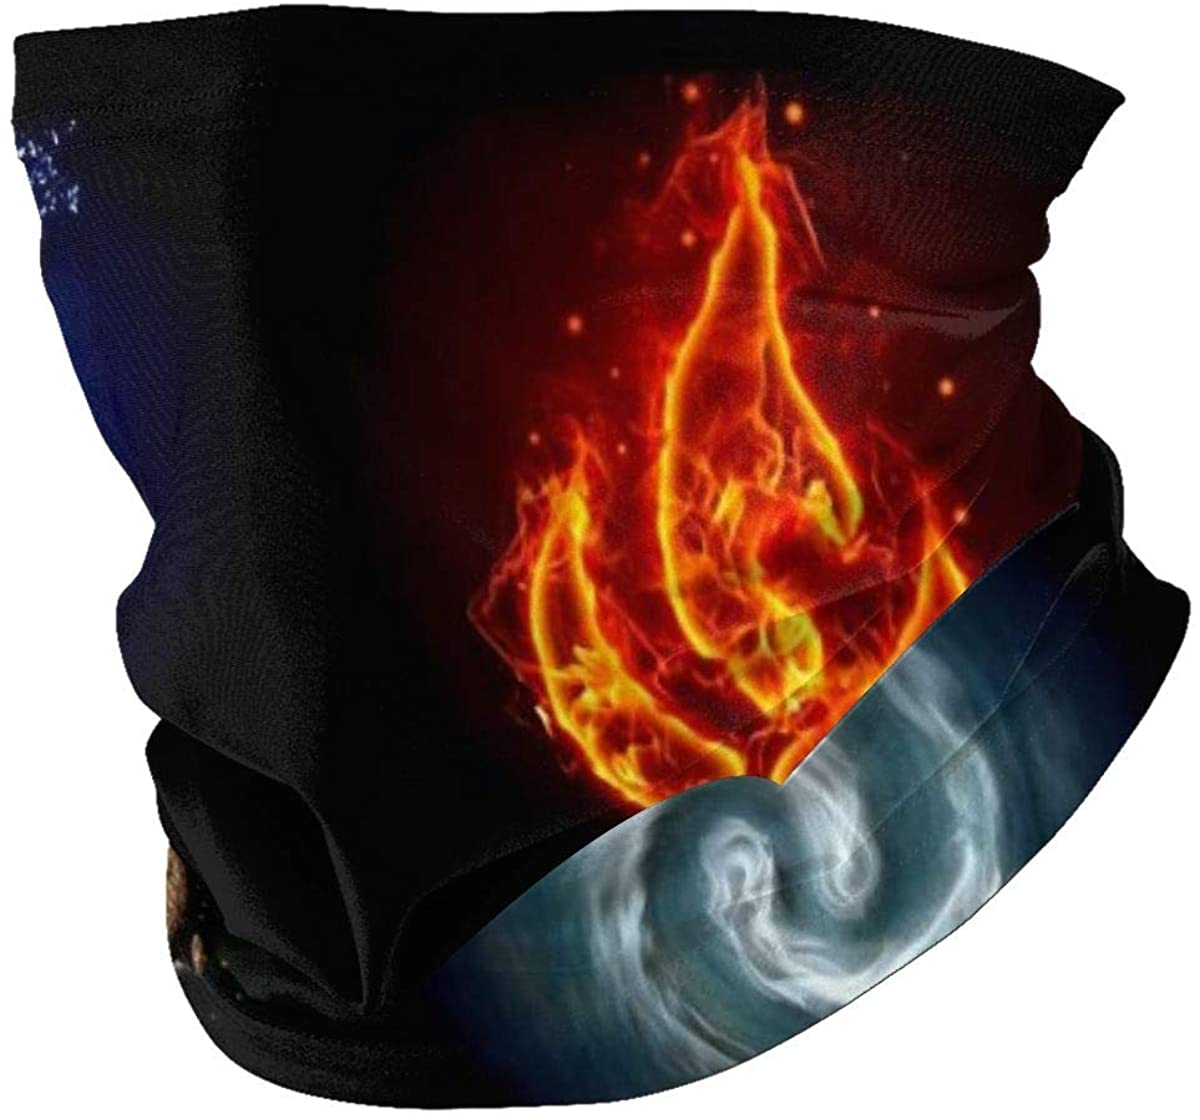 Avatar The Last Airbender Neck Gaiter Face Scarf Face Mask Lightweight Breathable Sun Protection for Fishing Hiking Running Cycling